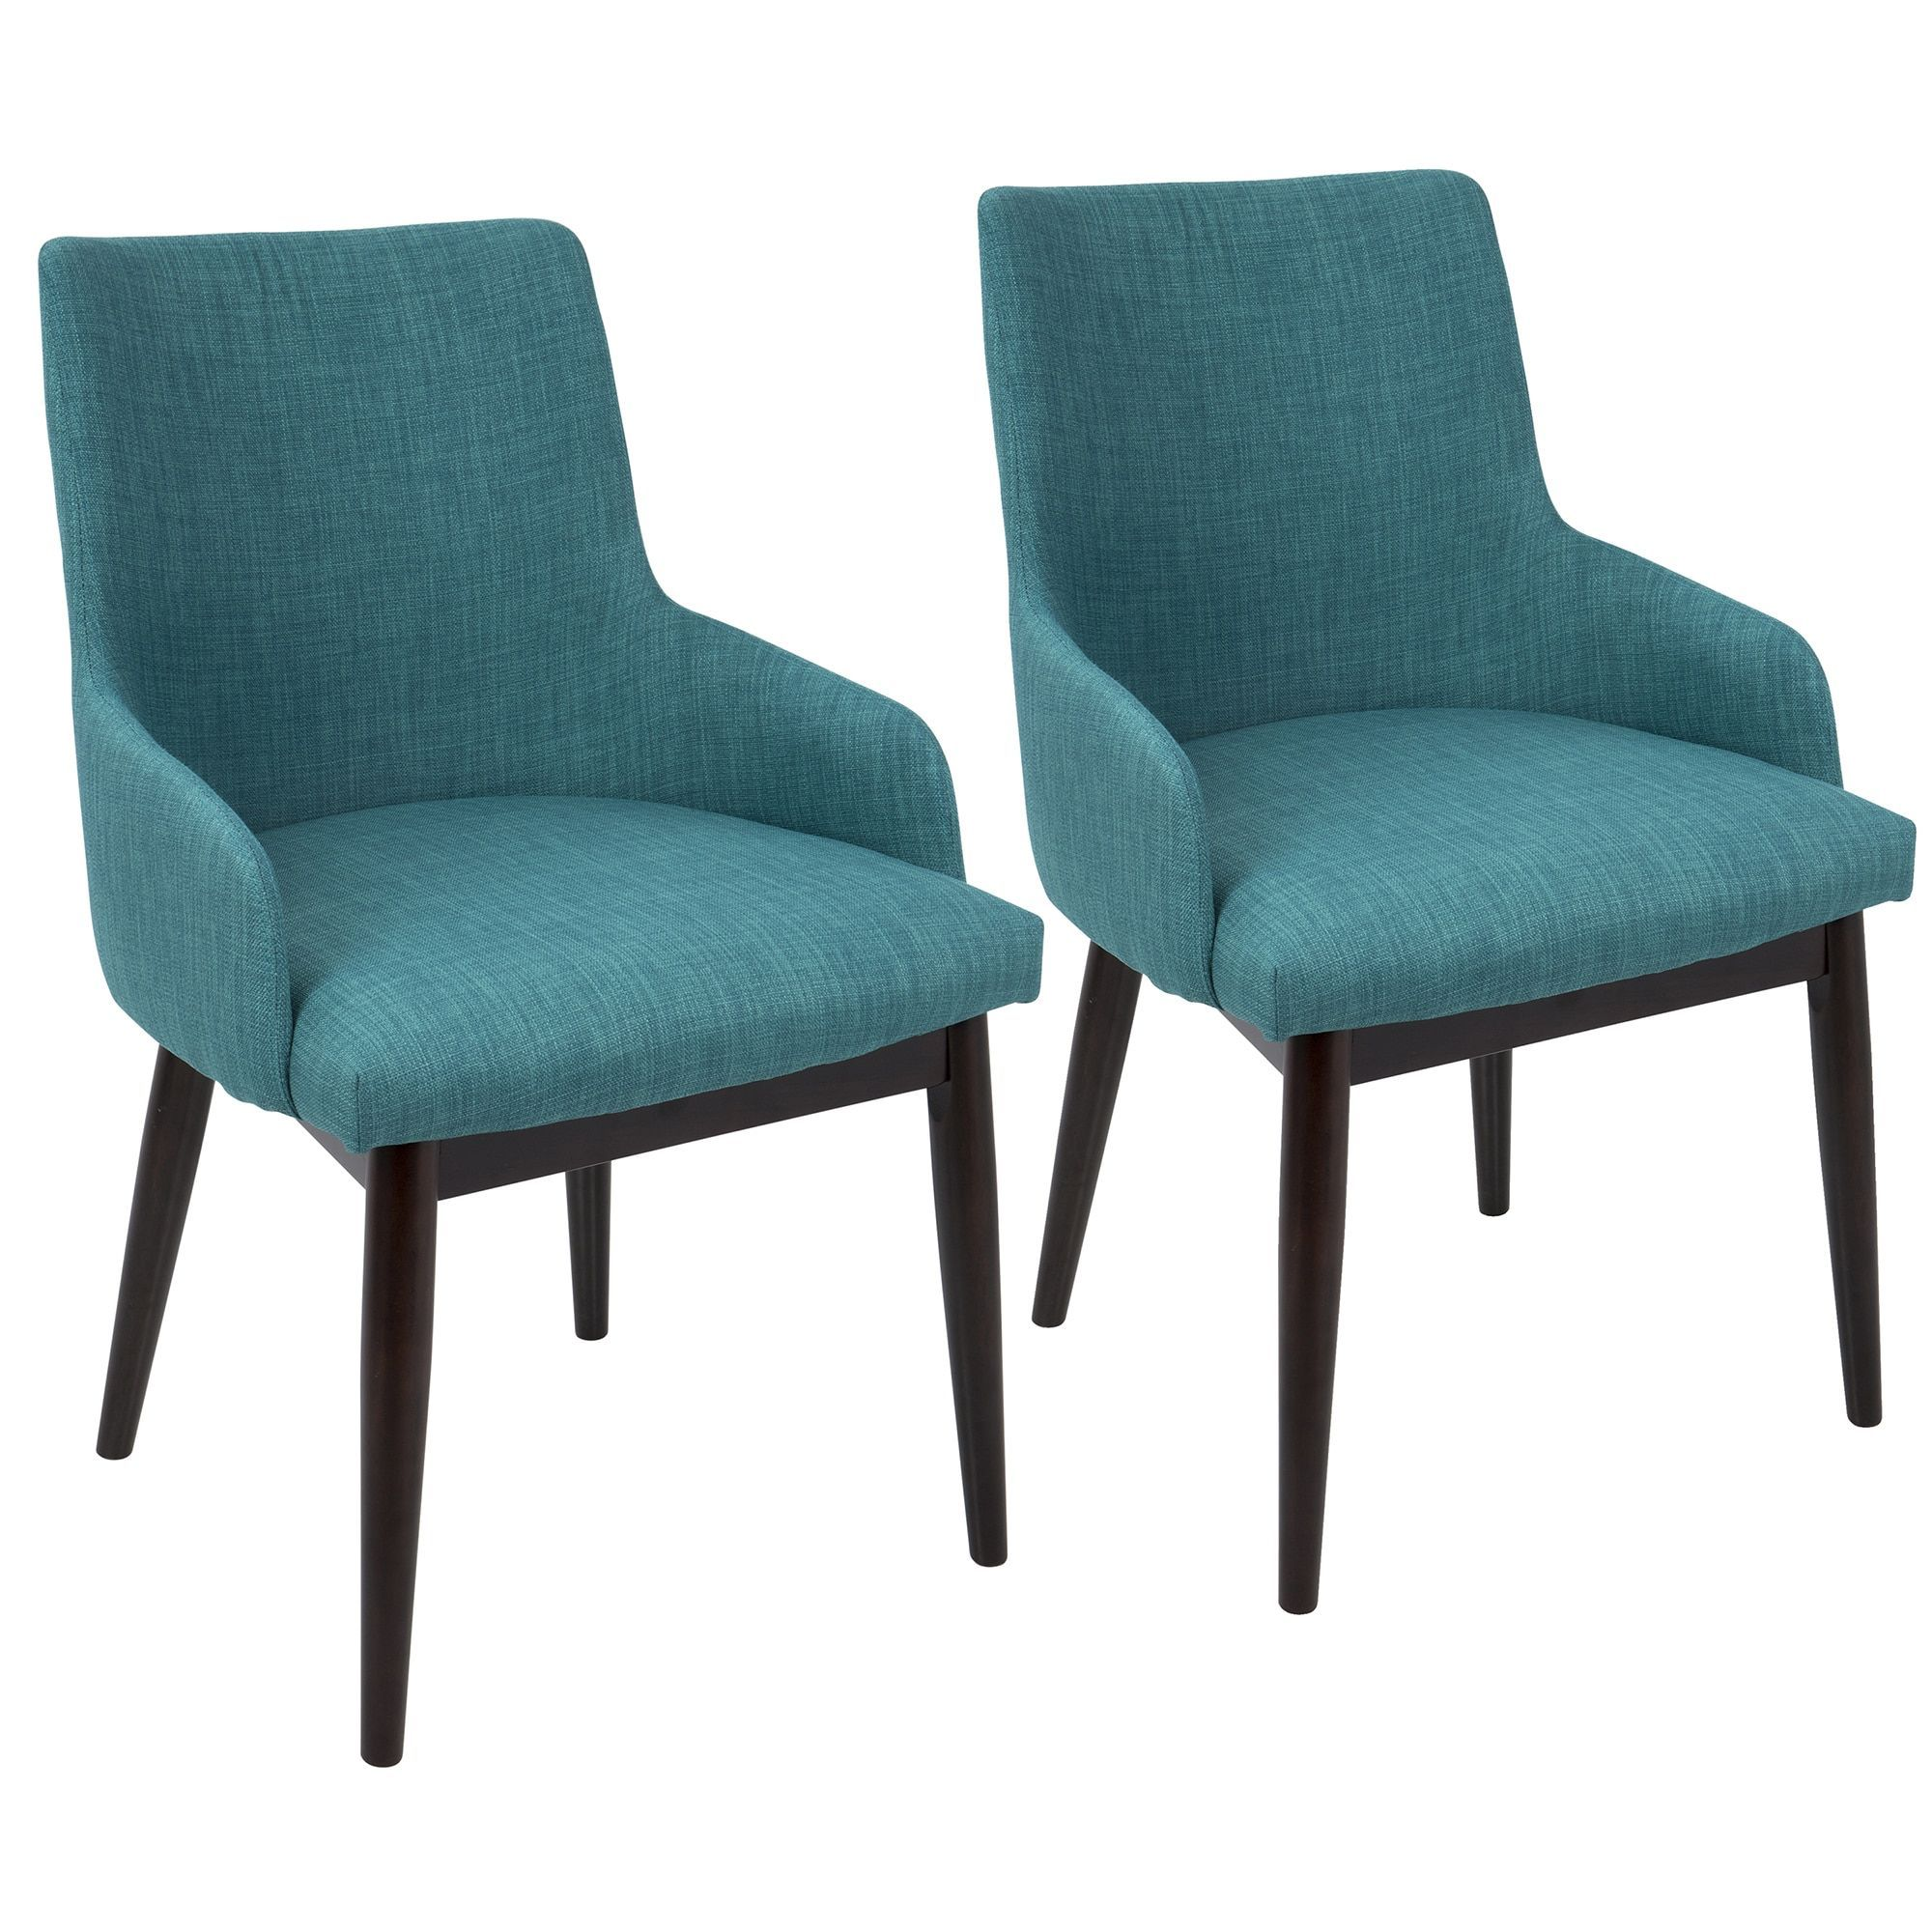 Santiago Fabric Upholstery Mid century Modern Dining Accent Chair